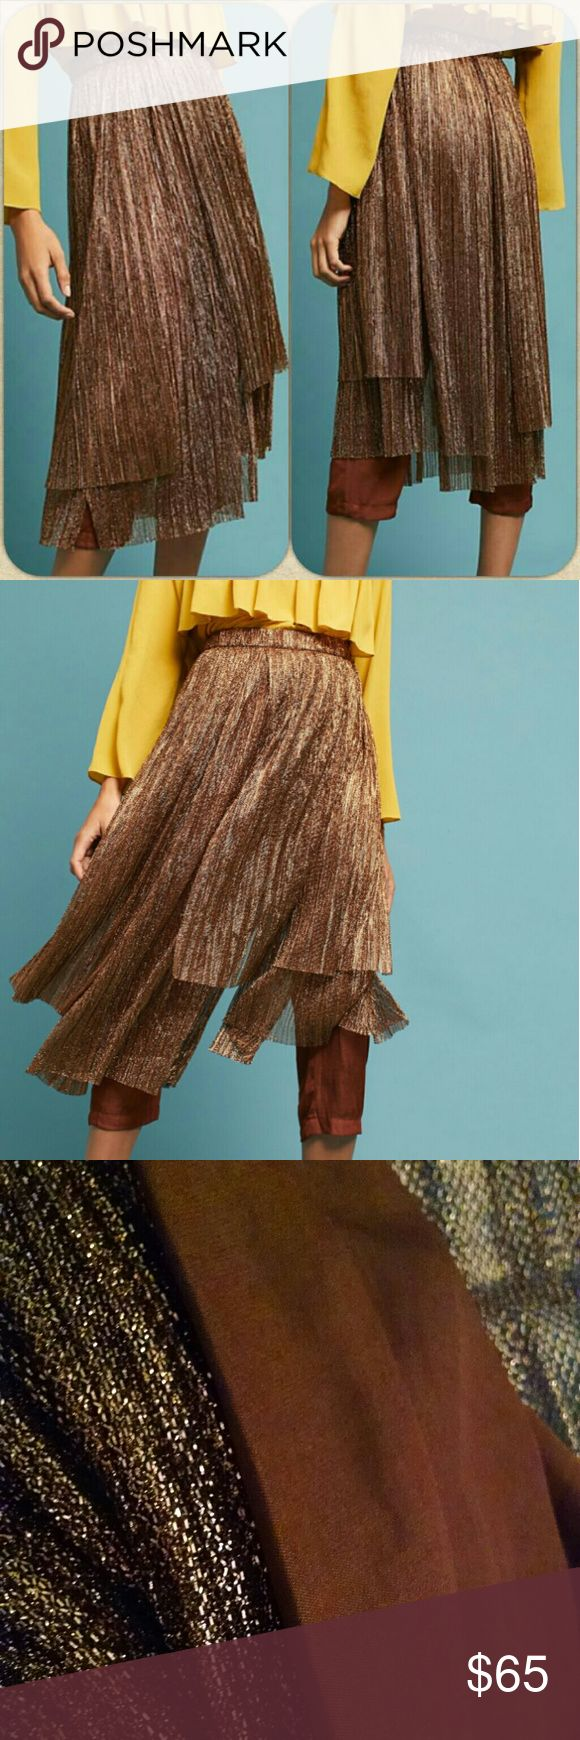 "🆕Anthropologie✨ Metallic Skirt Pants So pretty and comfortable! Zippered back and flowy pleats! Flows like a skirt and very soft pants. You can barely feel them! These are a lovely copper color!  By Maeve Polyester, metallic thread Back zip Dry clean True to size Imported 33""L  Ships next day!💌 Anthropologie Pants Wide Leg"